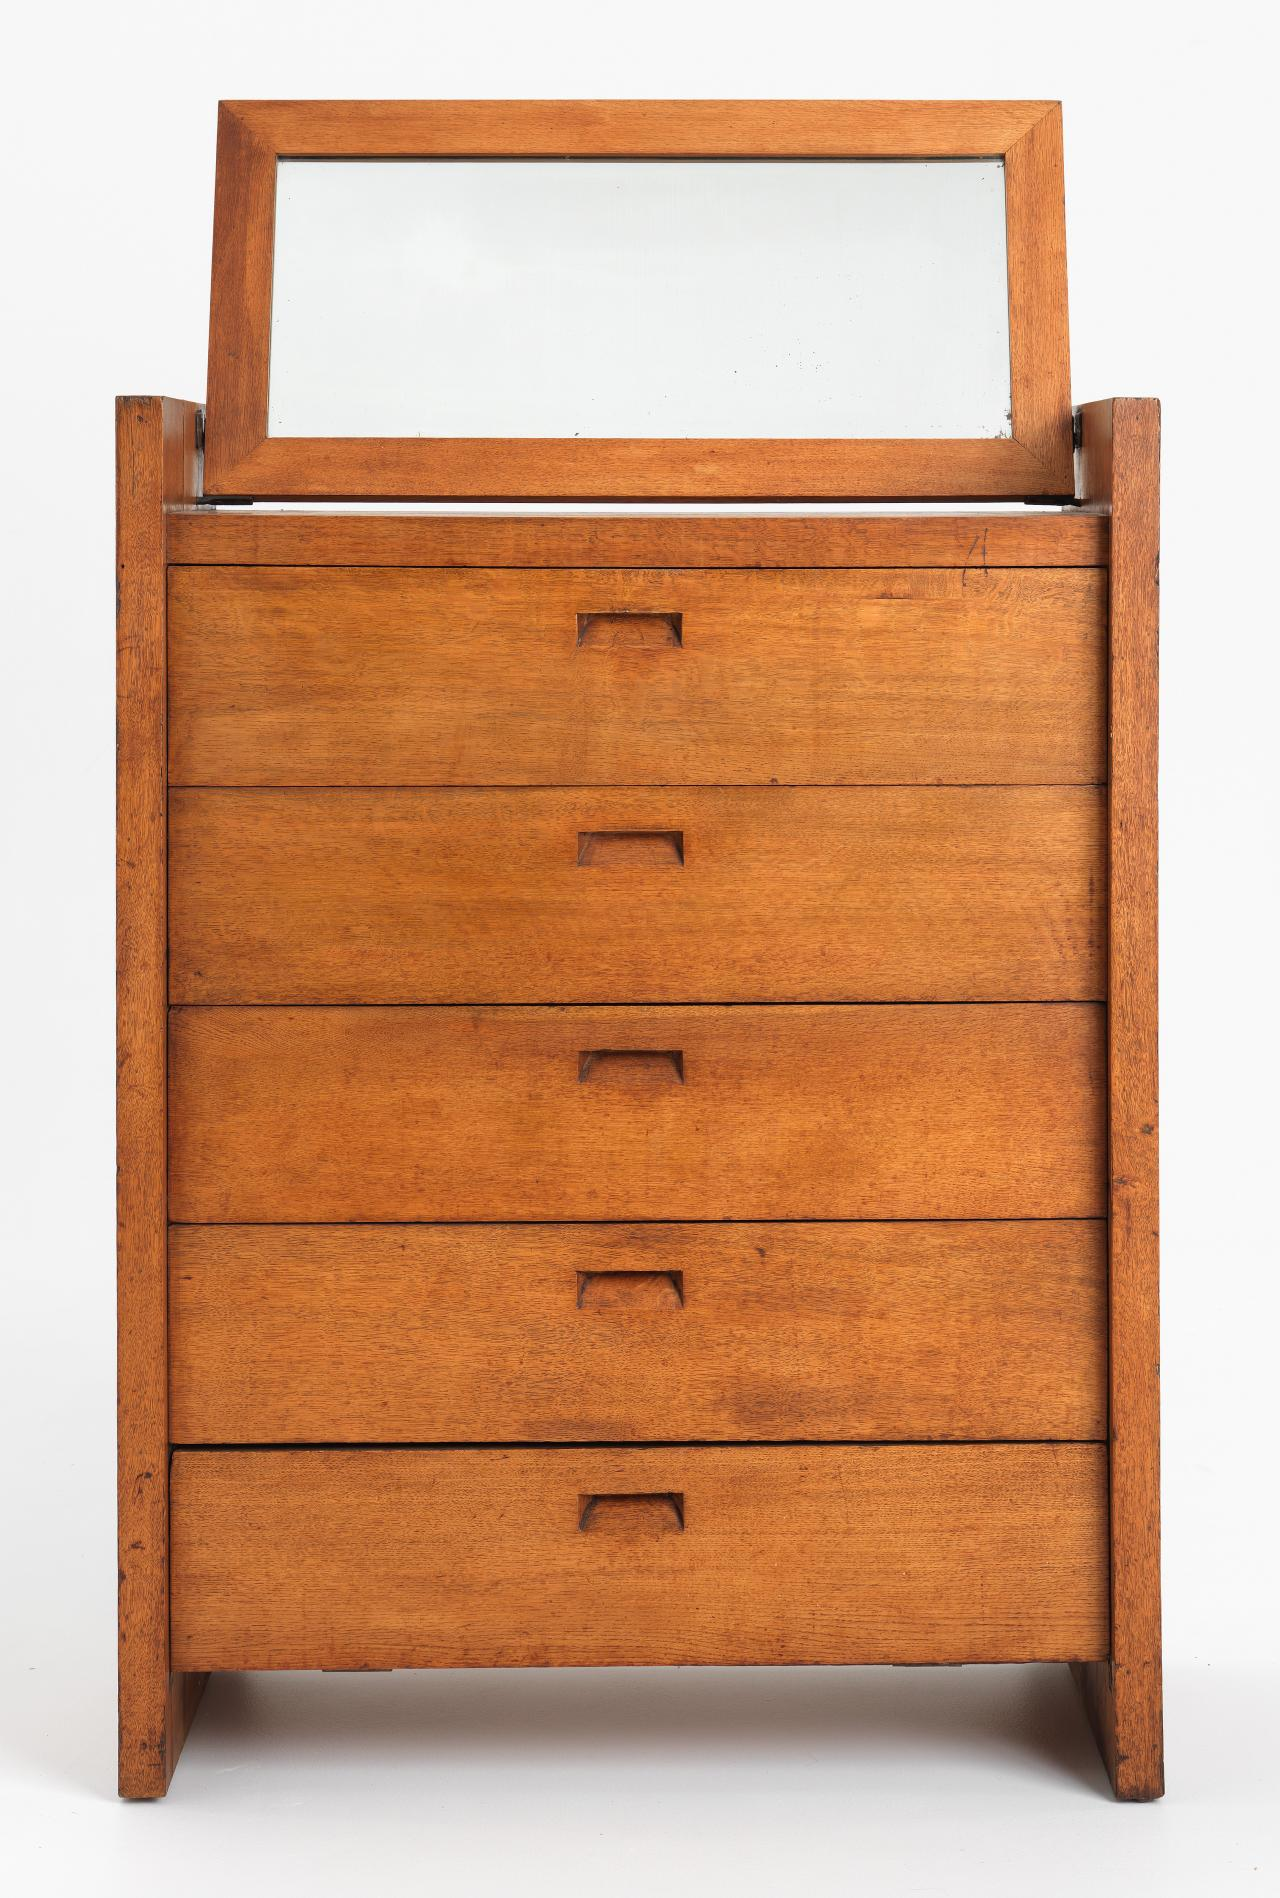 Suite of furniture from Newman College, University of Melbourne: chiffonier